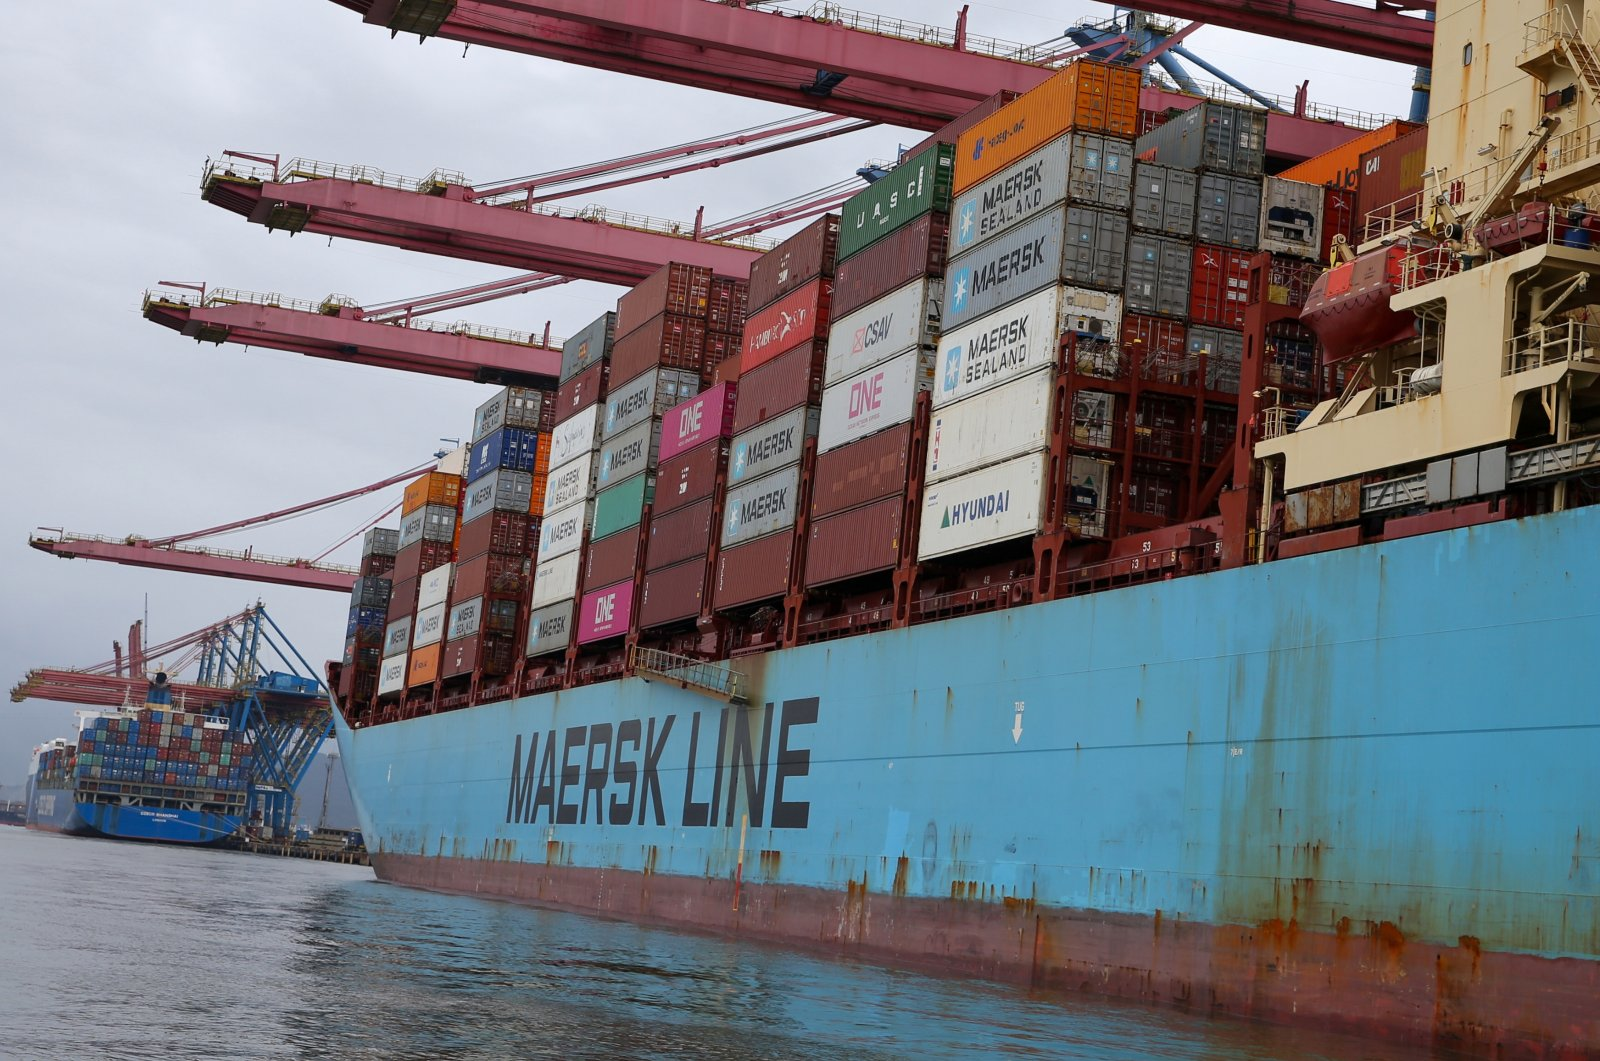 A Maersk ship and containers are seen at the Port of Santos, Brazil Sept. 23, 2019. (Reuters File Photo)